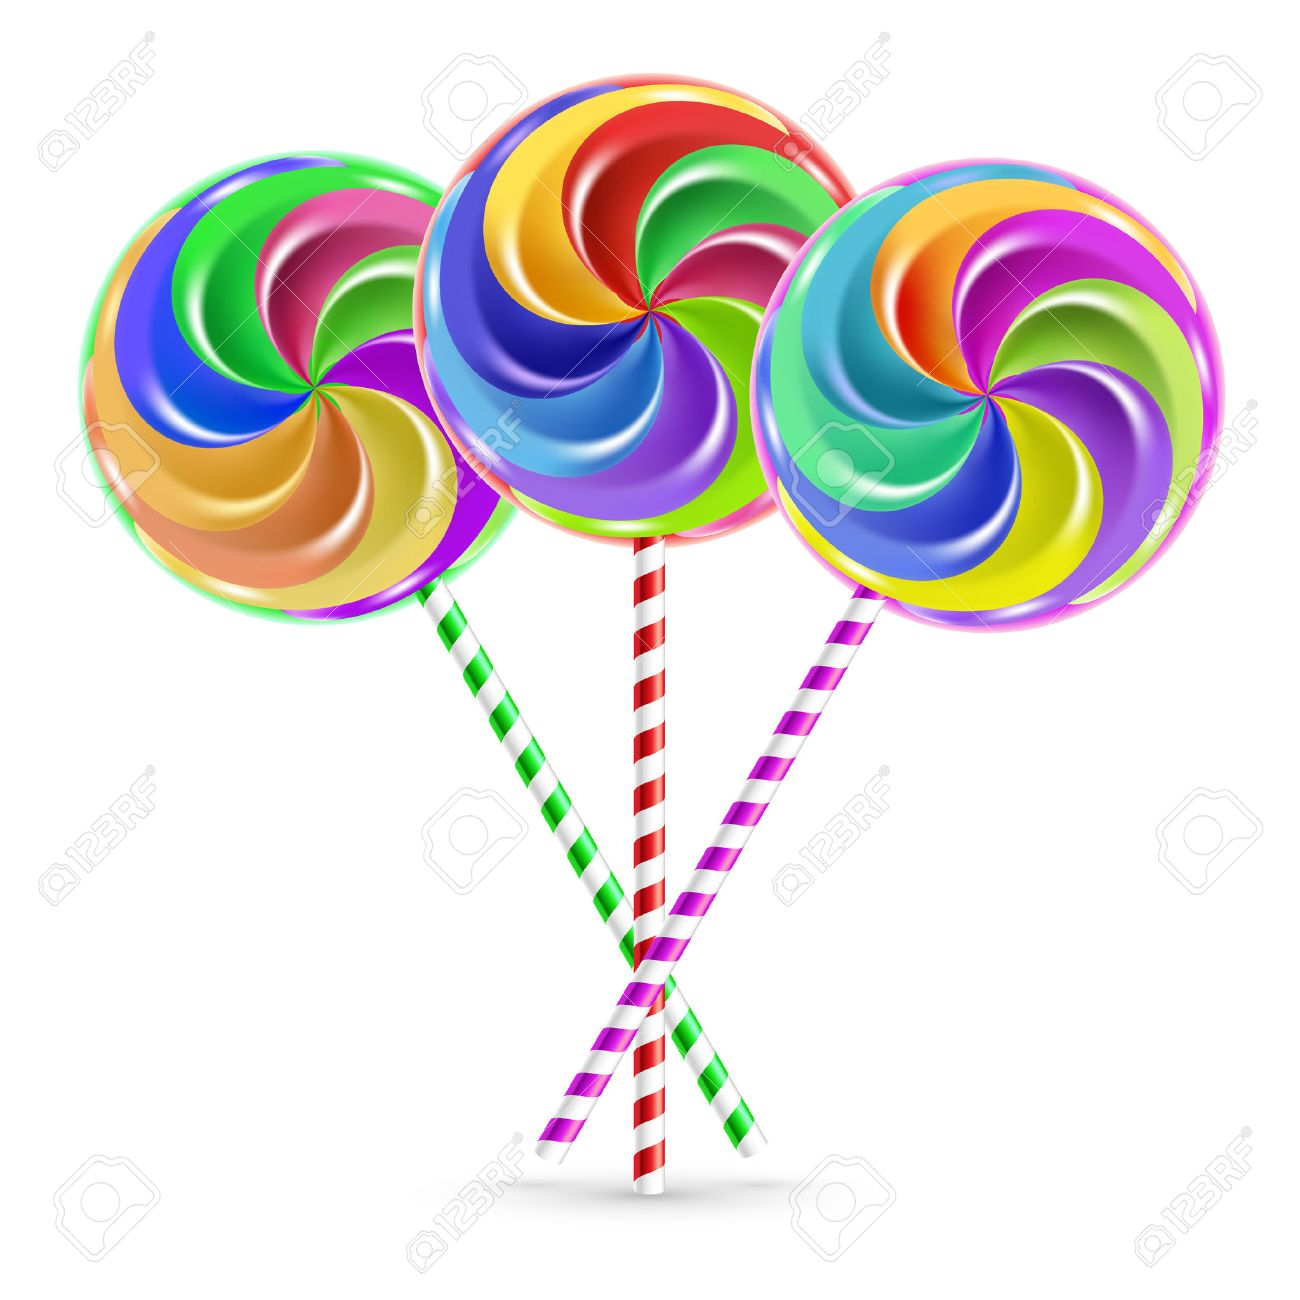 hight resolution of the colorful lollipops on striped sticks over white stock vector 28022002